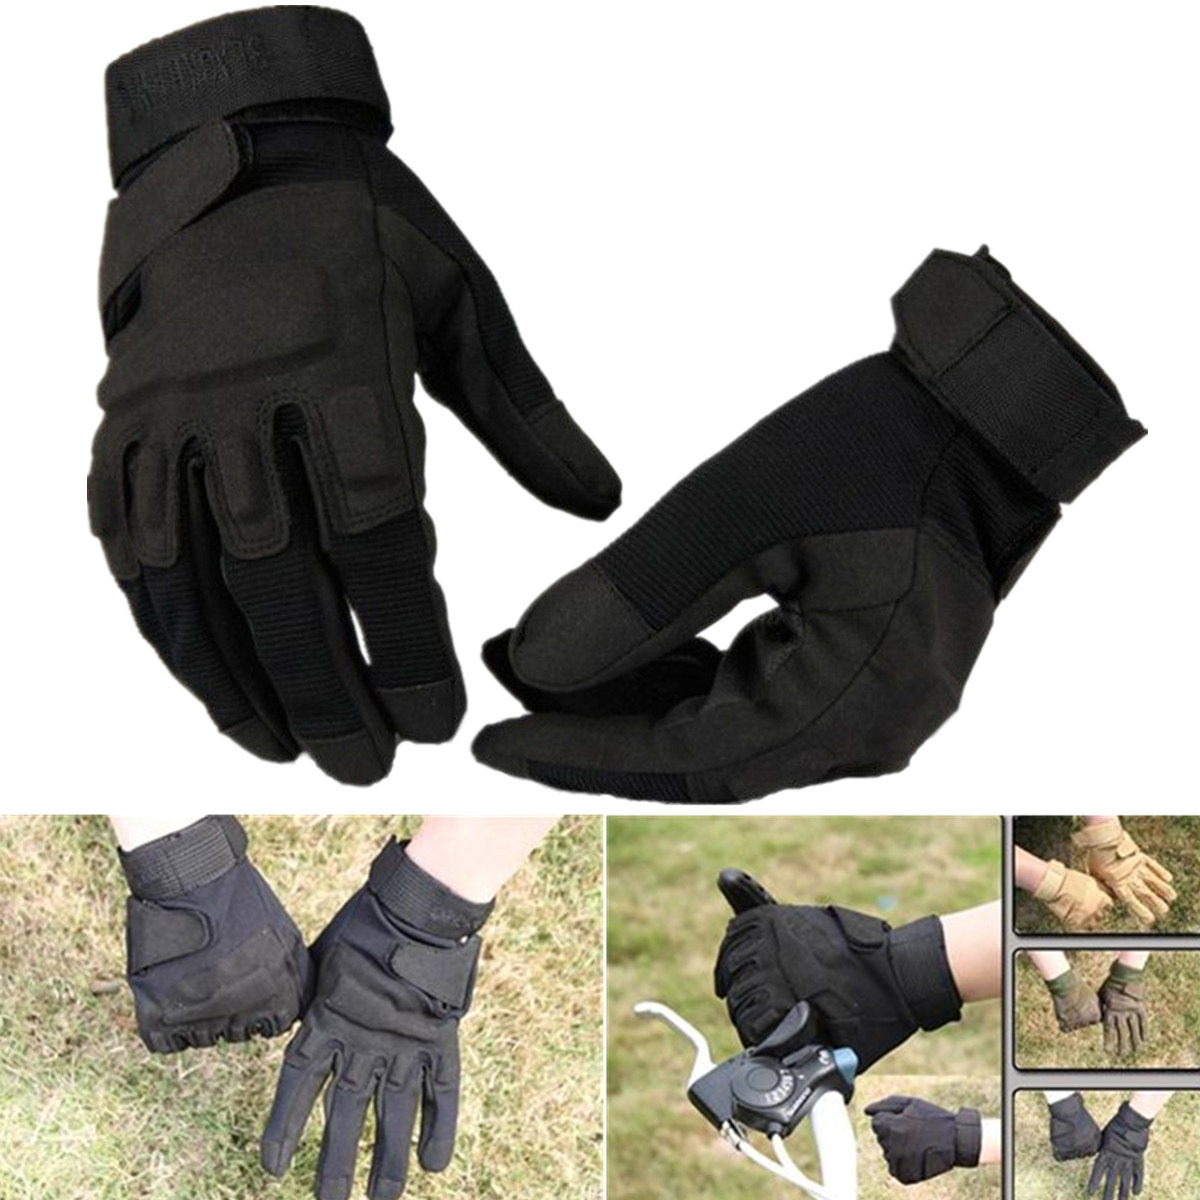 Workout Gloves Full Finger: Full Finger Weight Lifting Training Military Army Tactical